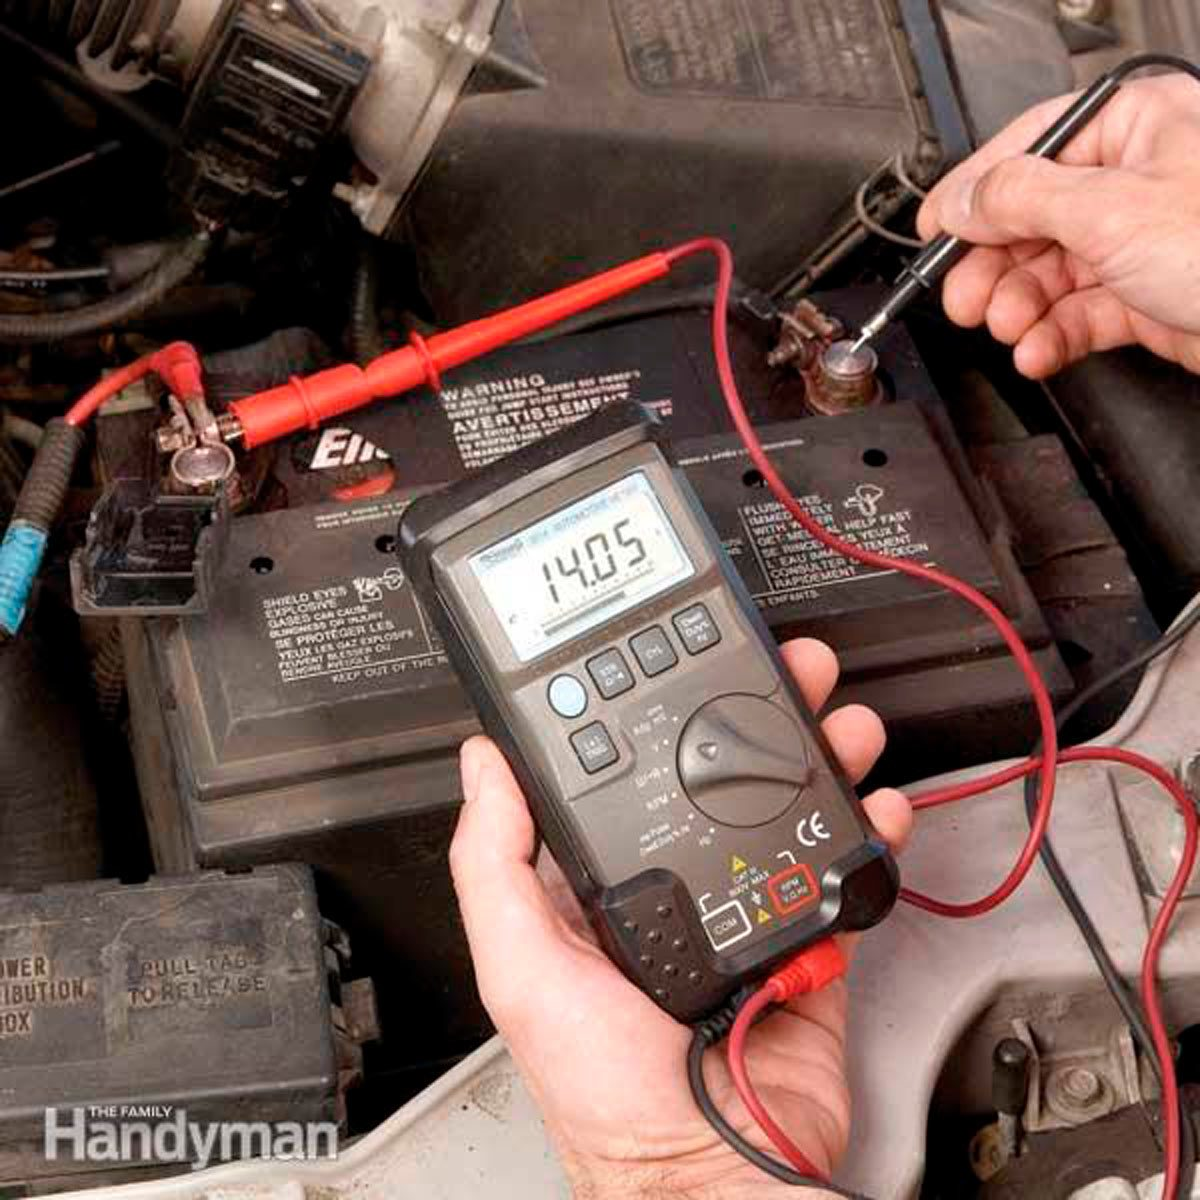 66 mustang alternator wiring diagram club car ds how to test an with one tool the family handyman a voltmeter